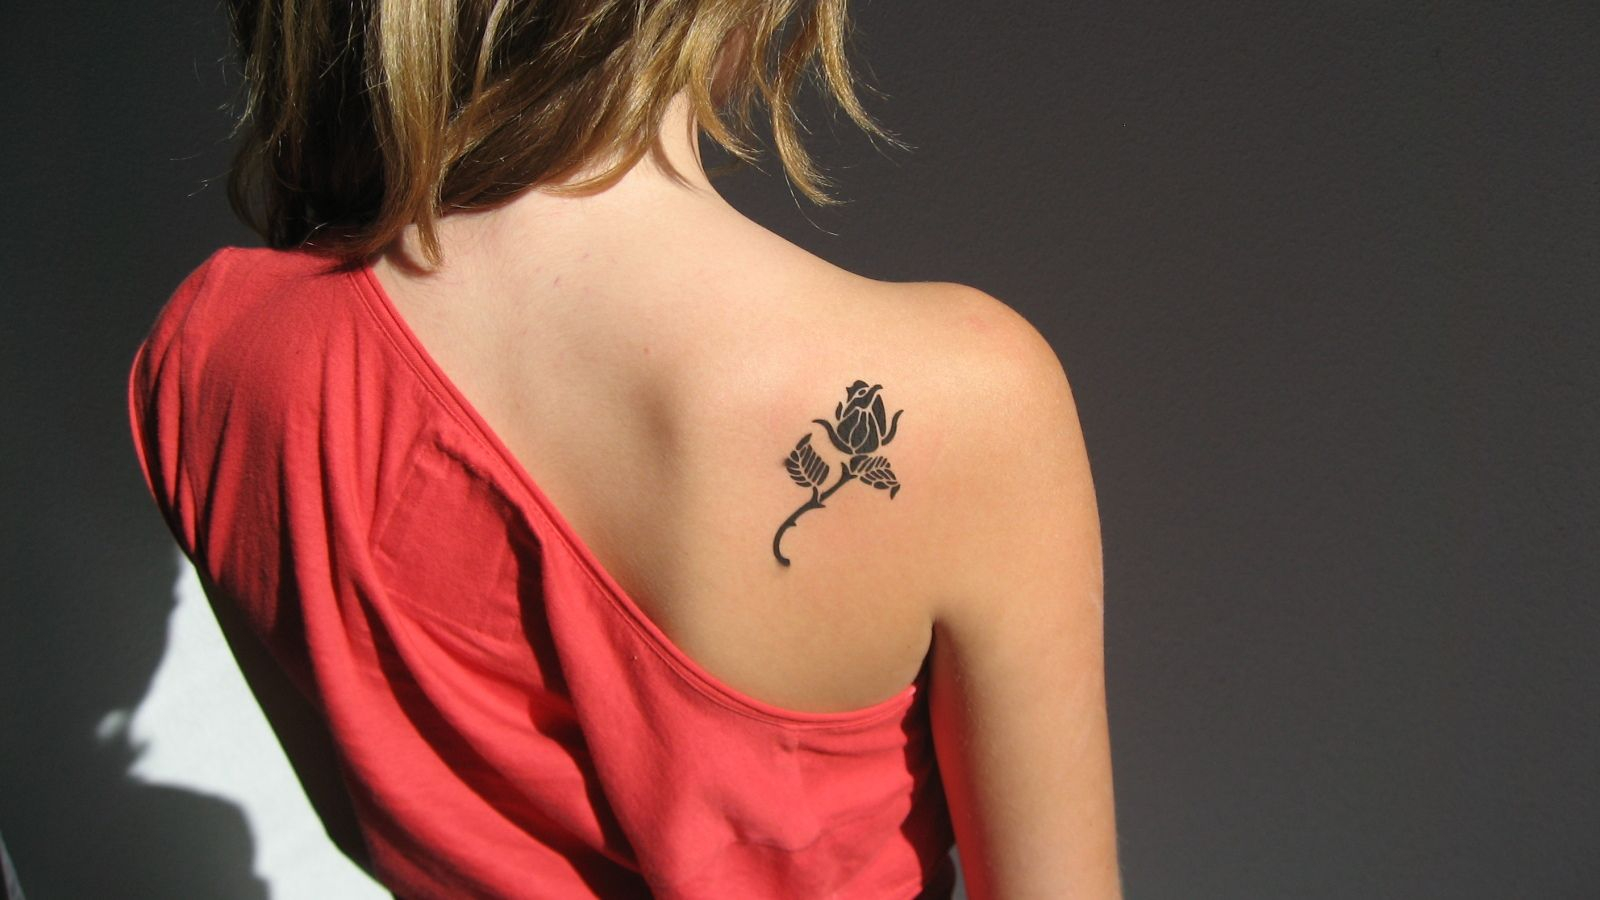 Back Shoulder Black Small Flower Tattoos Designs Tattoos throughout dimensions 1600 X 900